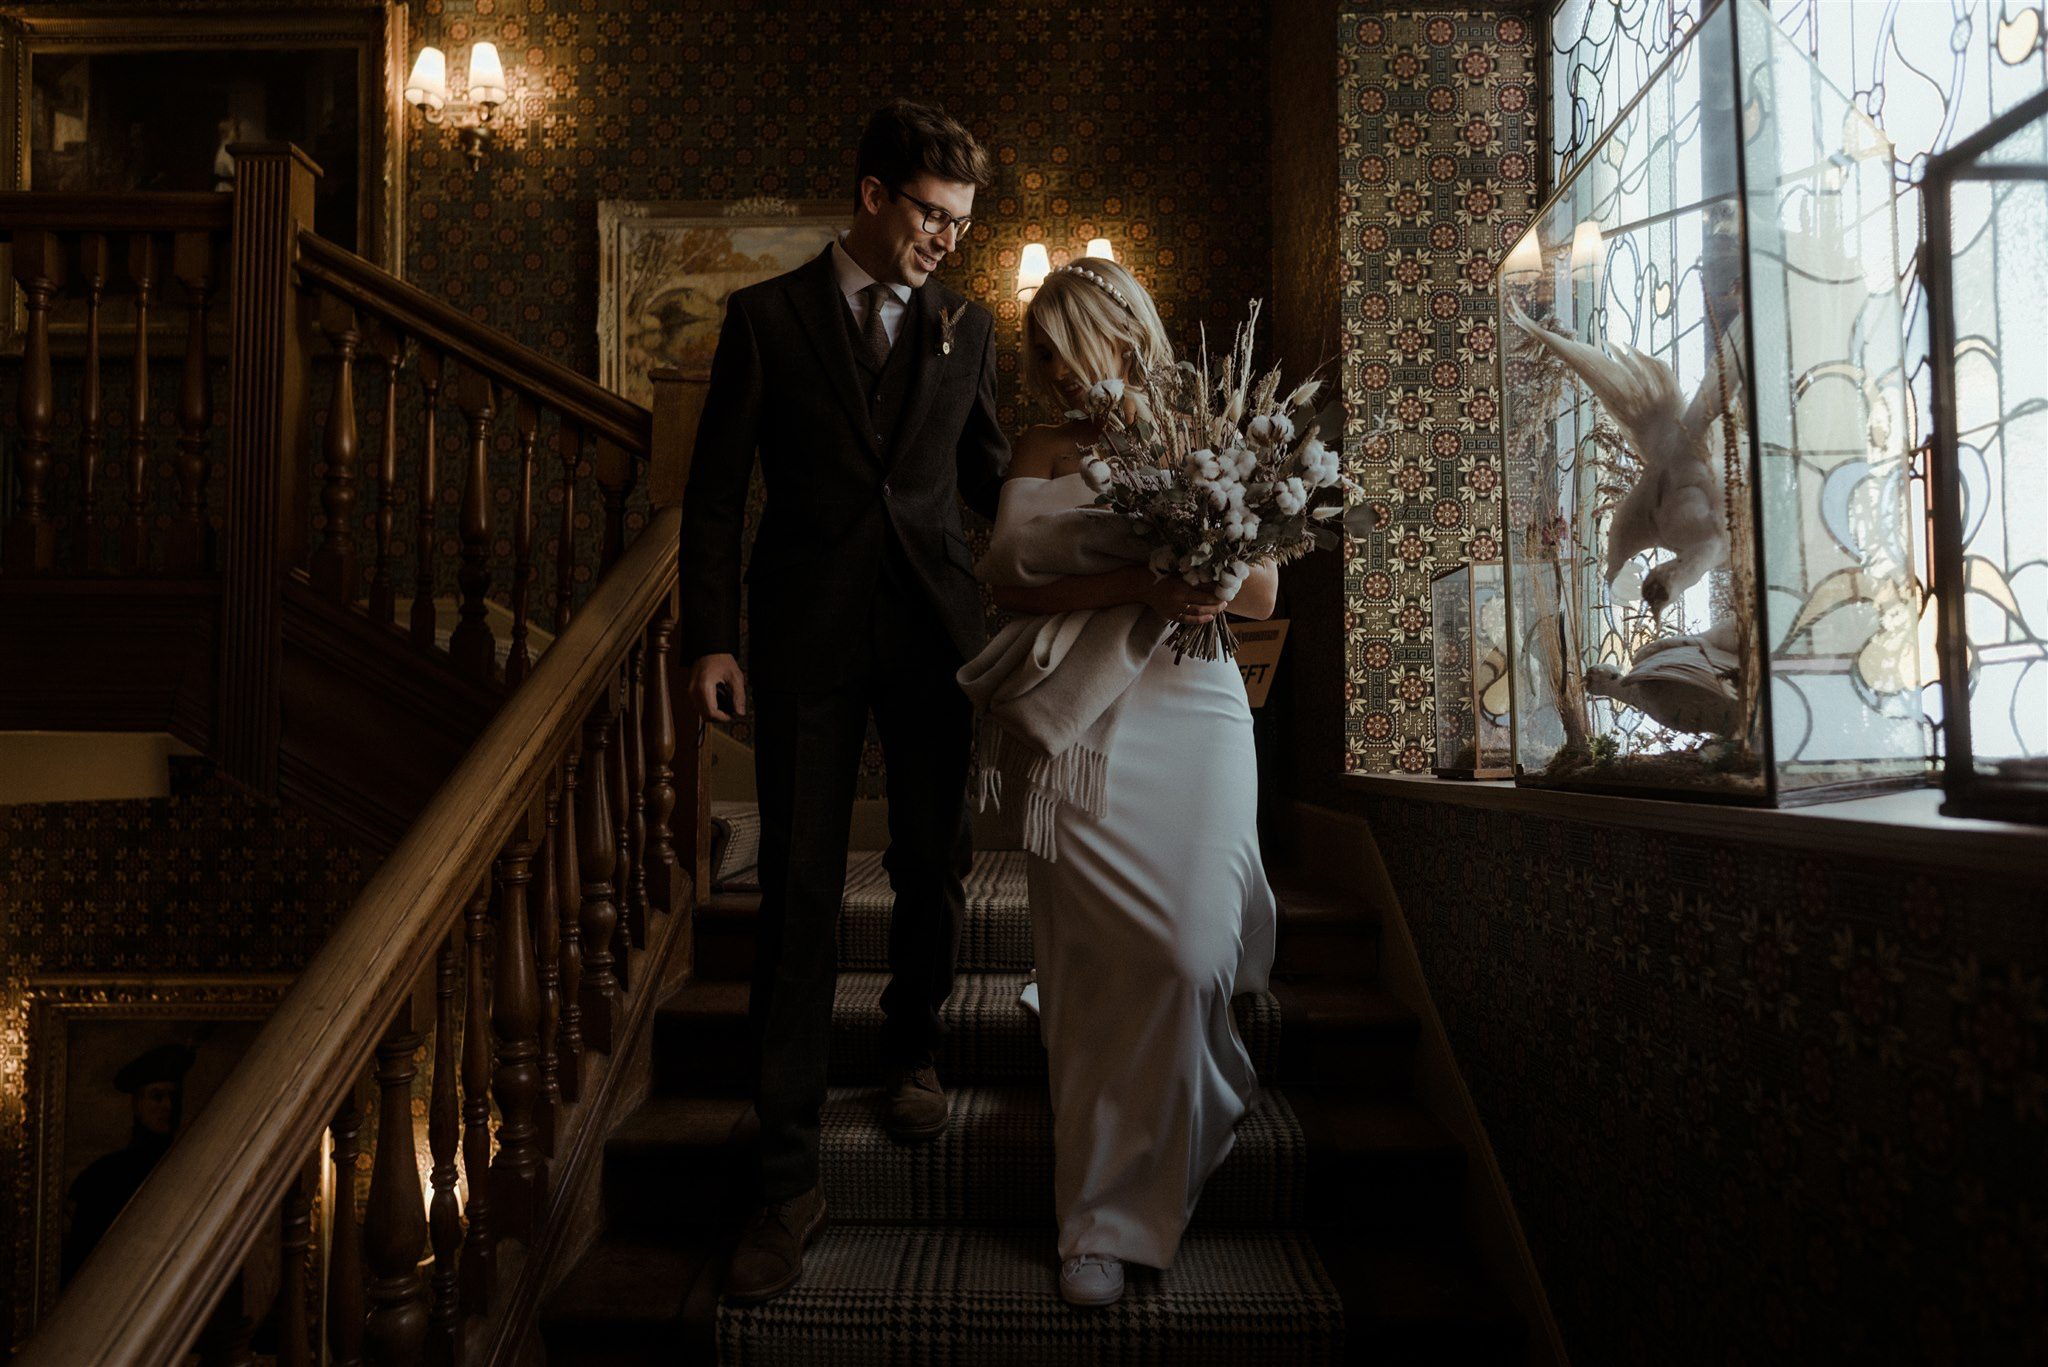 Bride and groom on a staircase at The Fife Arms in Braemar